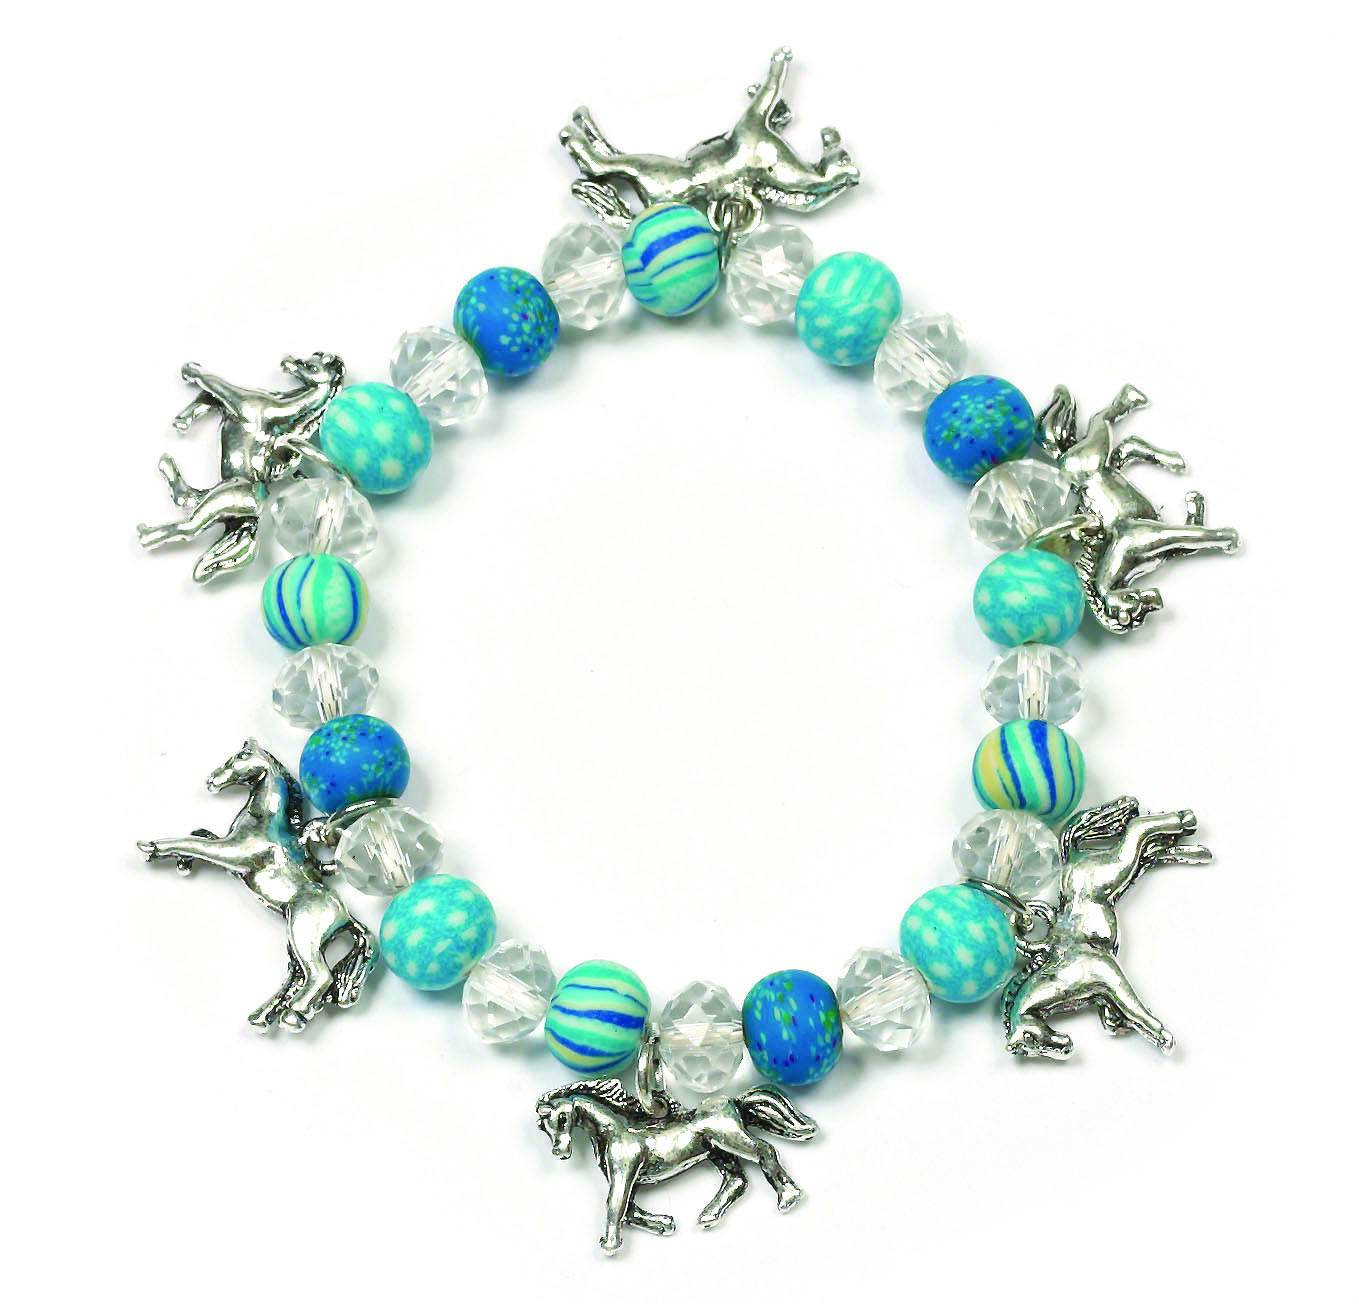 Colored Bead Stretch Bracelet with Charms